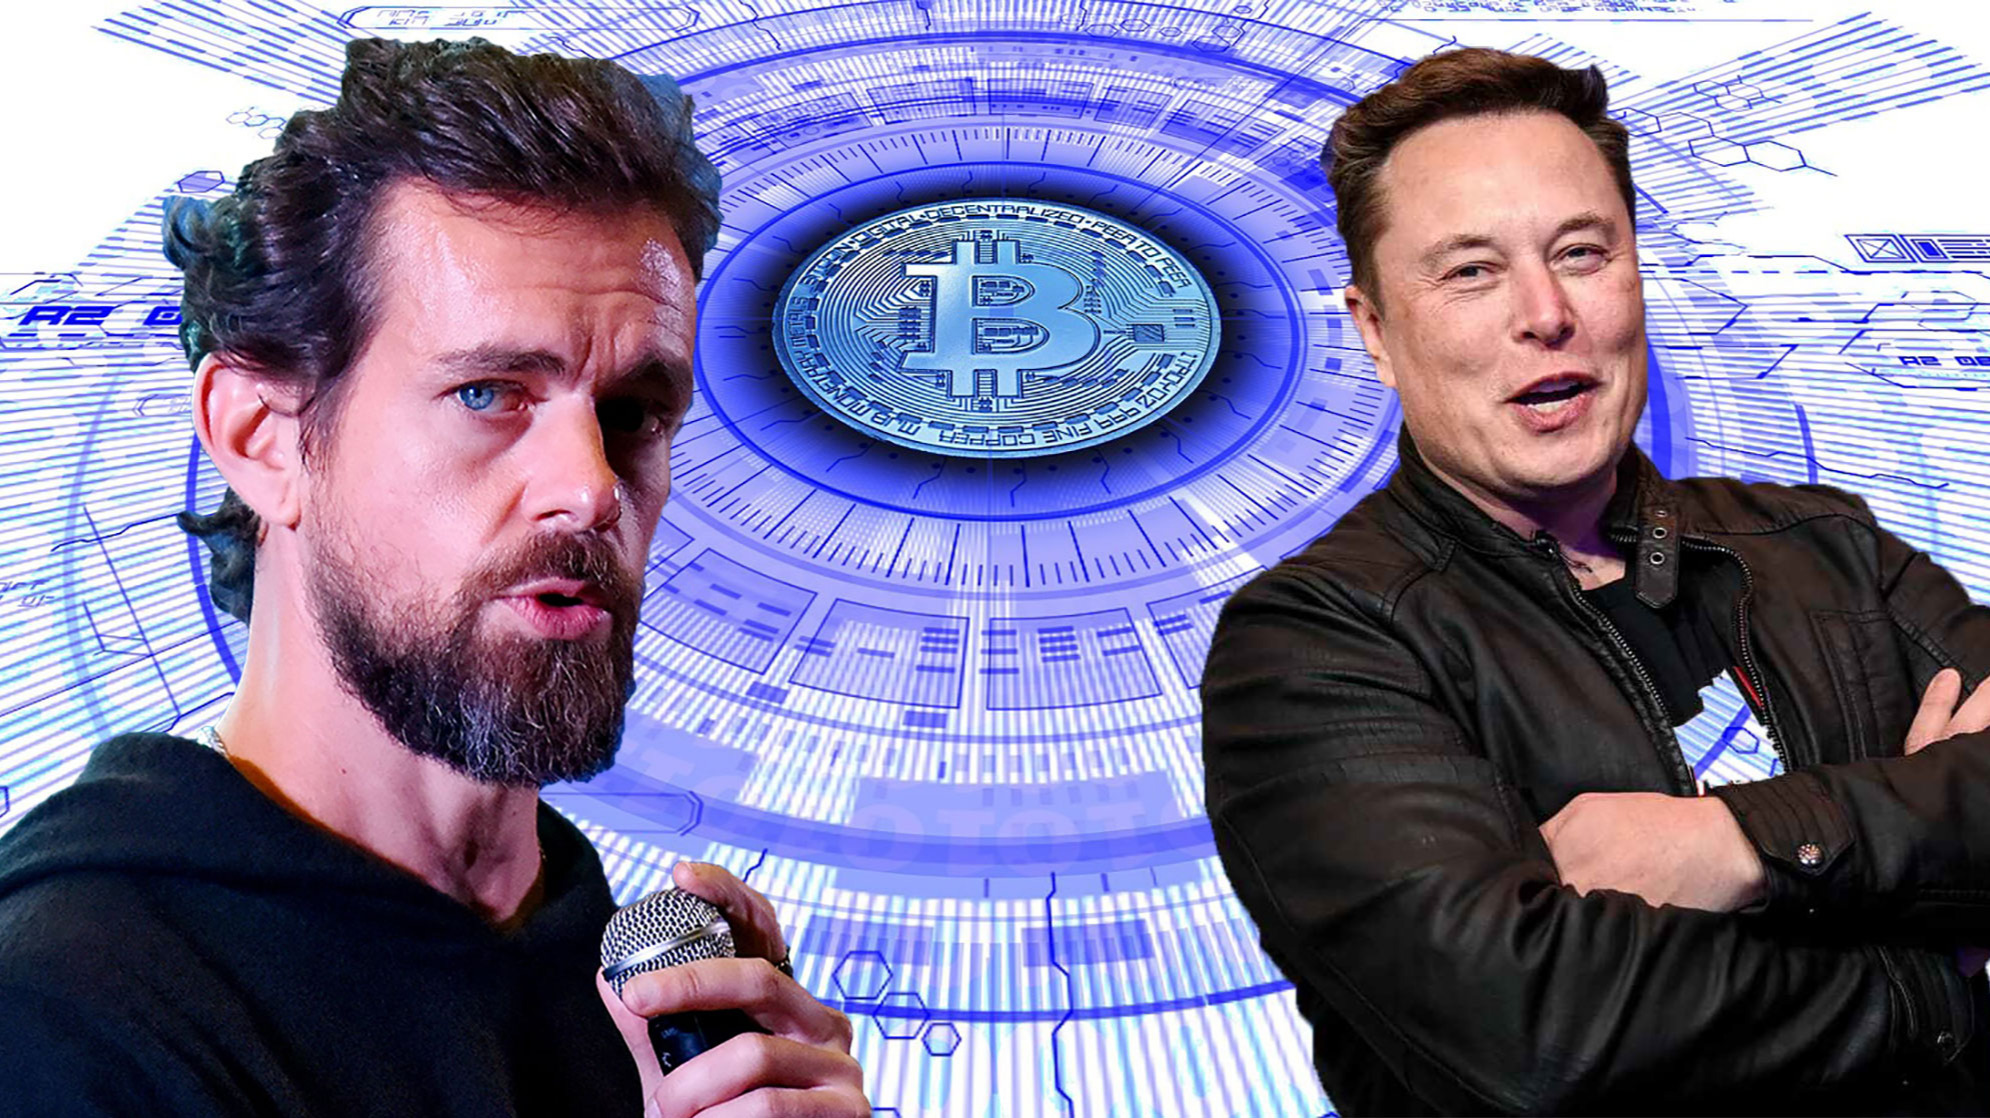 Elon Musk, Jack Dorsey and others are promoting Bitcoin! Are Bitcoin markets mature enough for that?